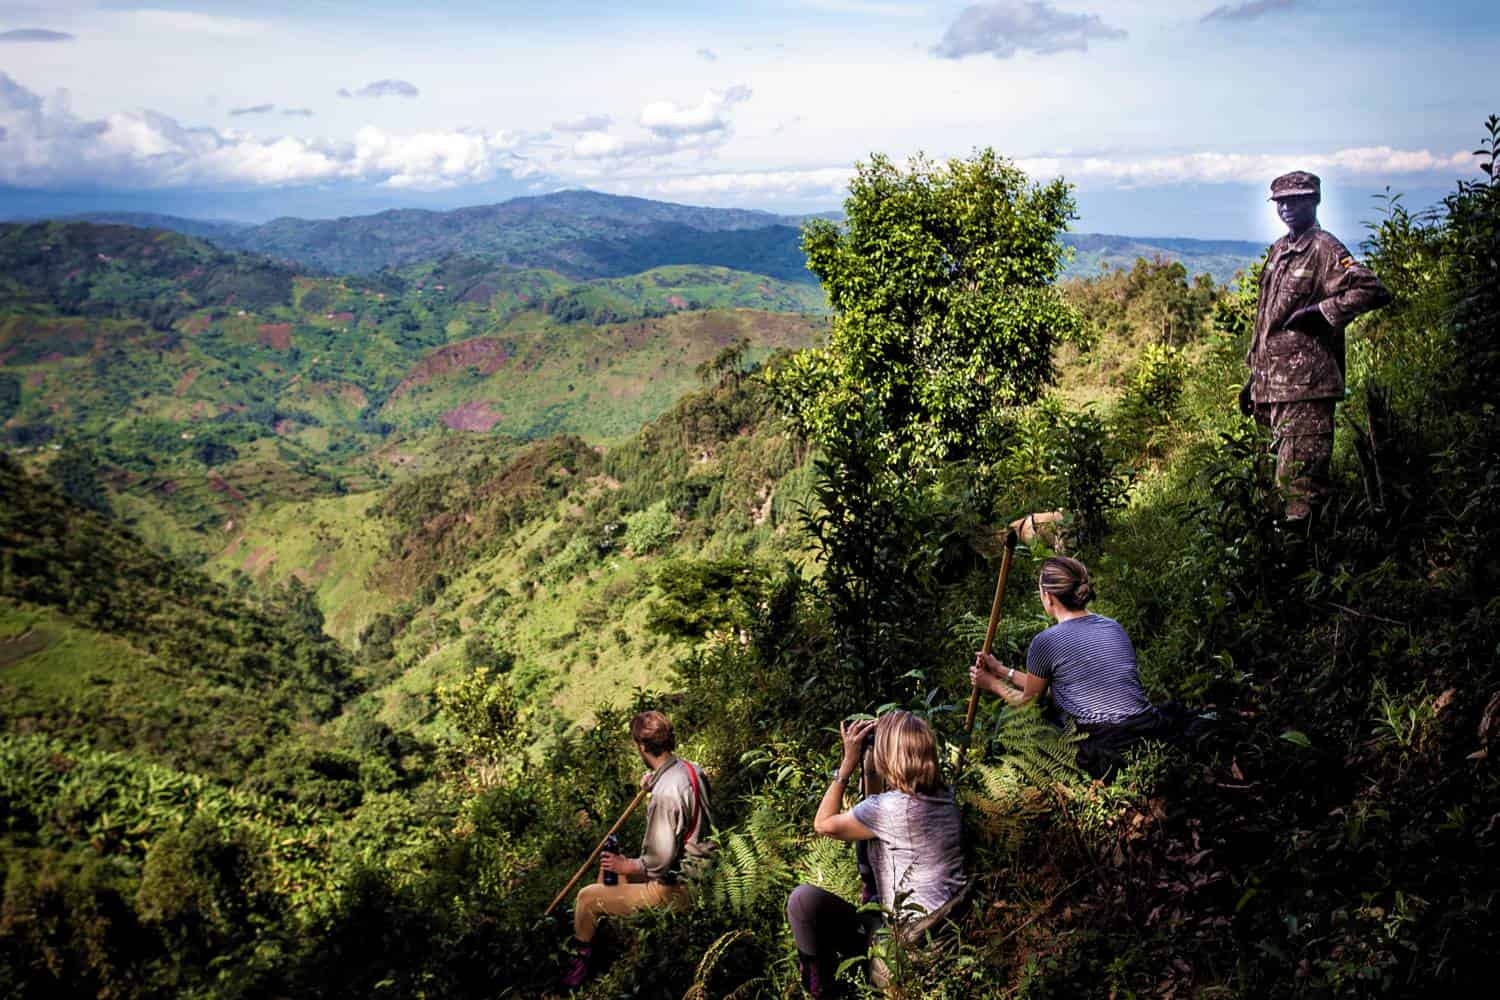 Which Sectors In Bwindi Are The Gorilla Families Seen